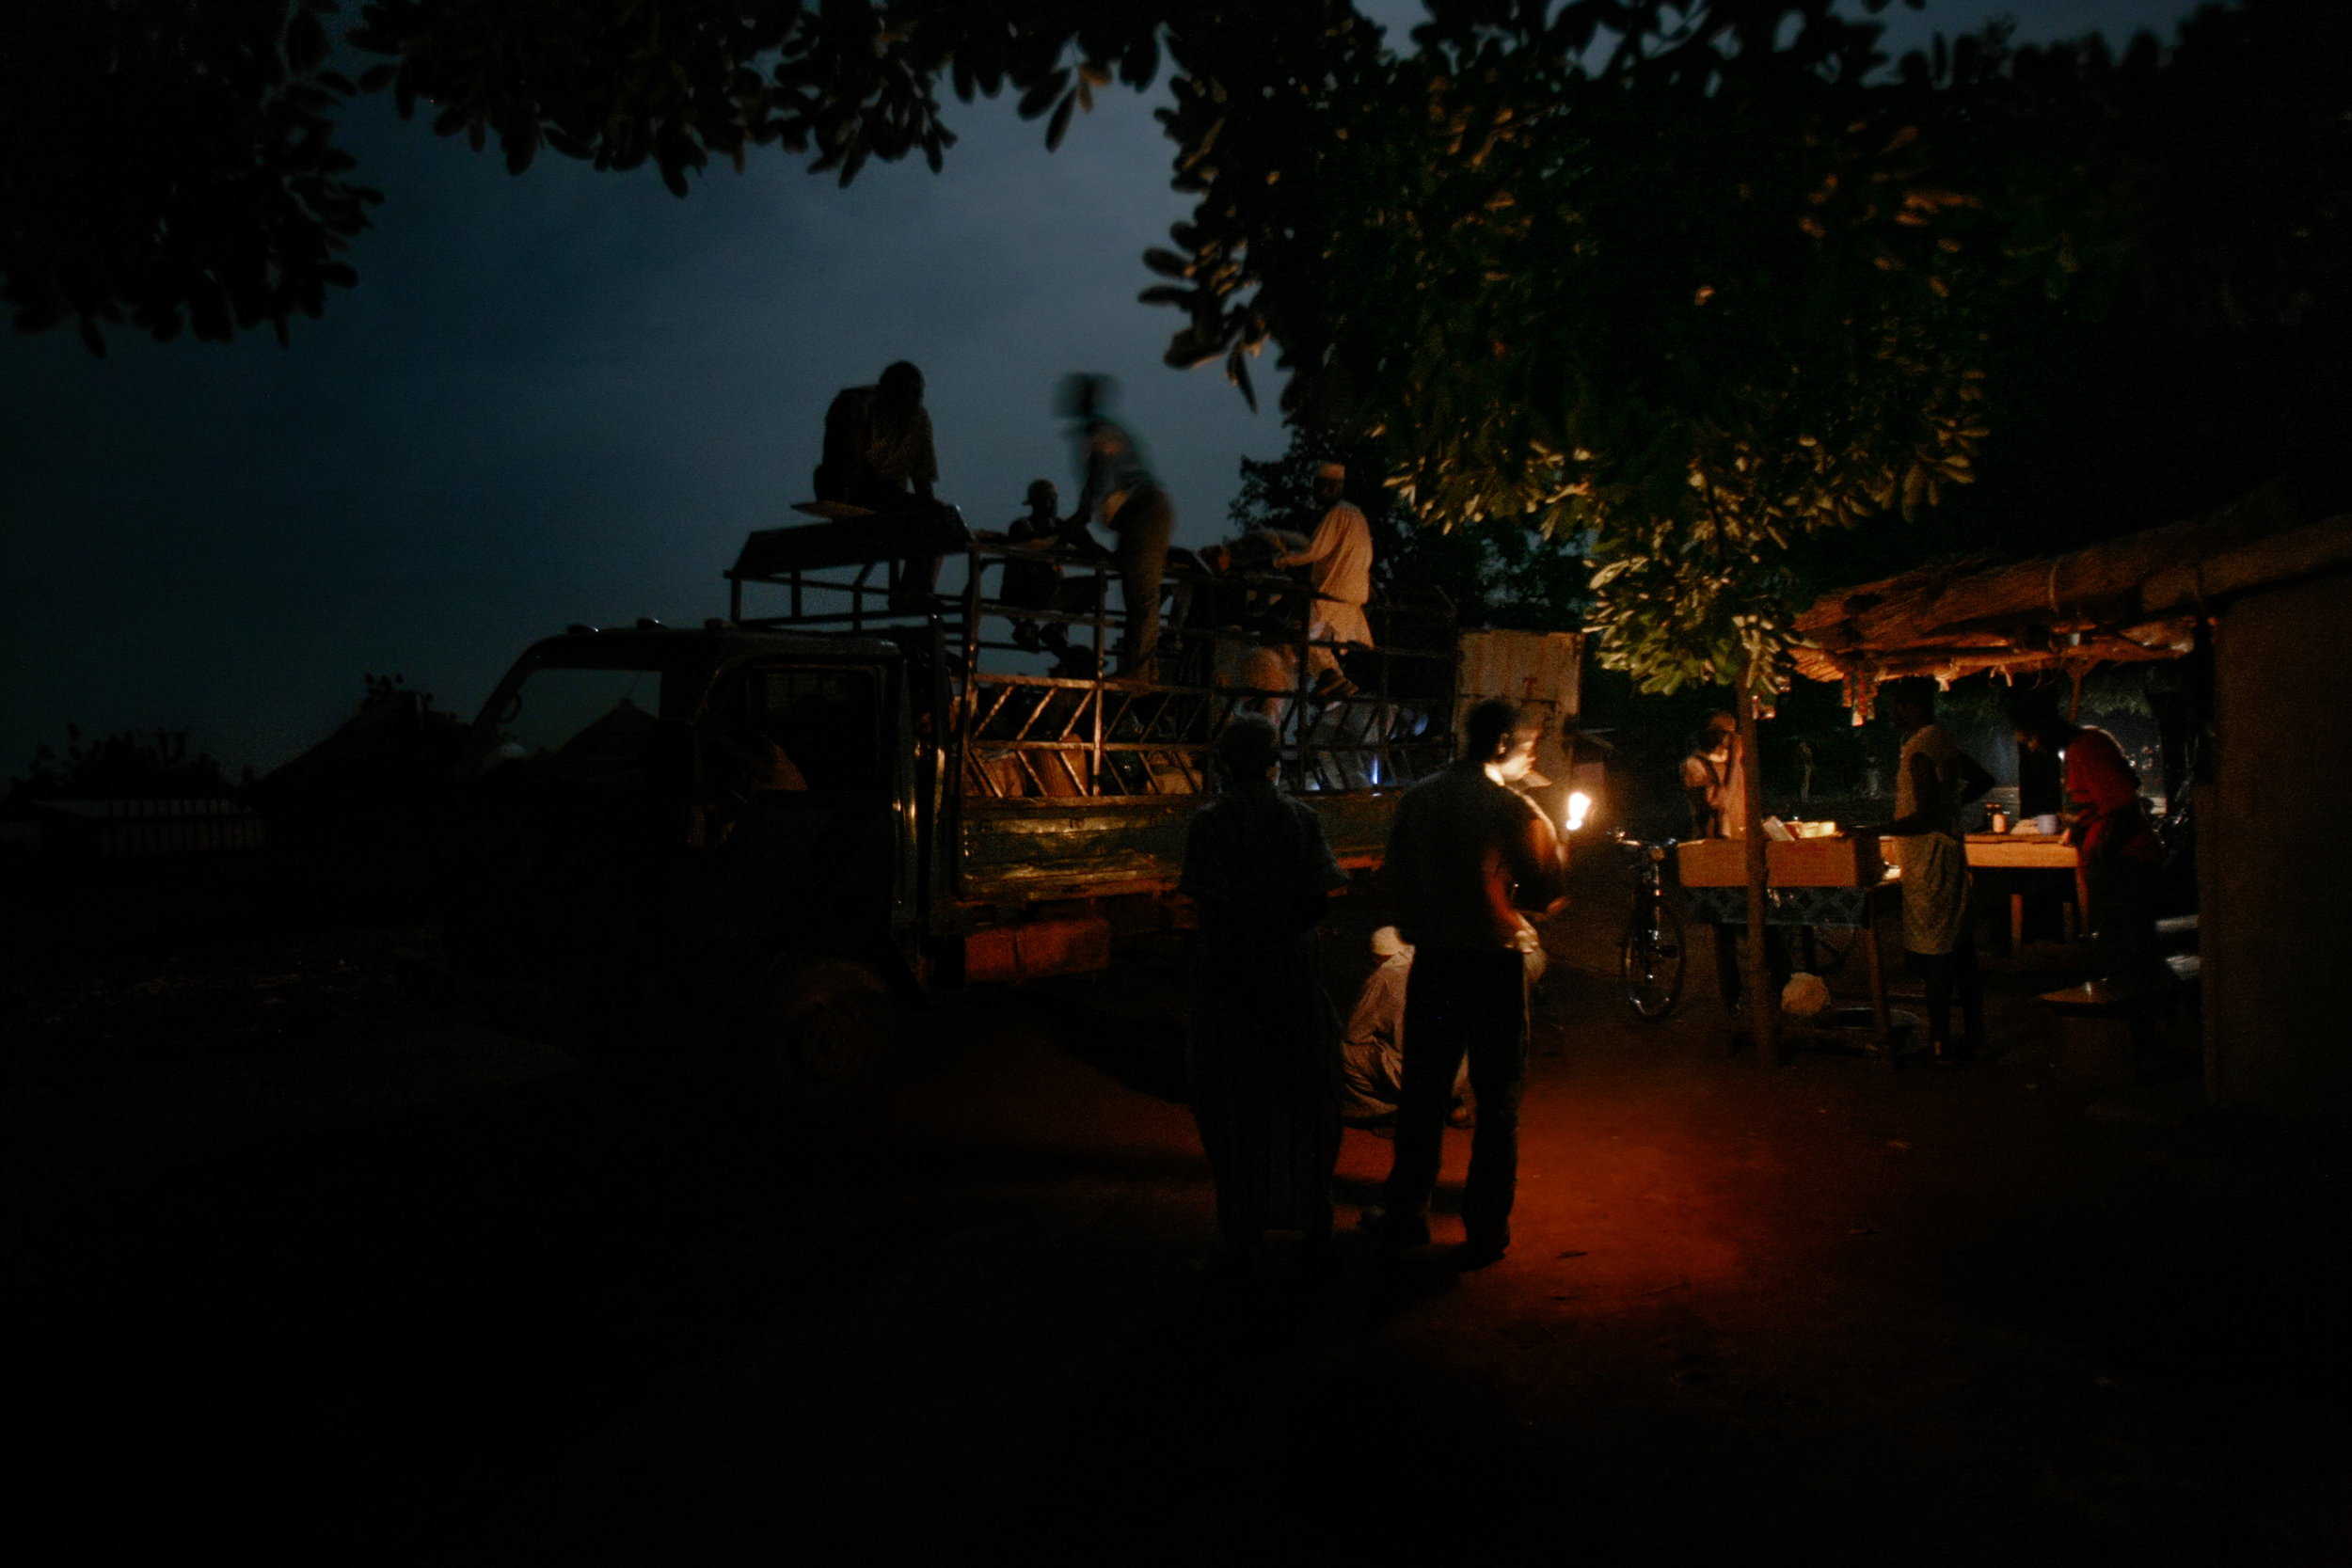 People board the last car of the night through Wantugu, Northern Region, Ghana on June 27, 2007.